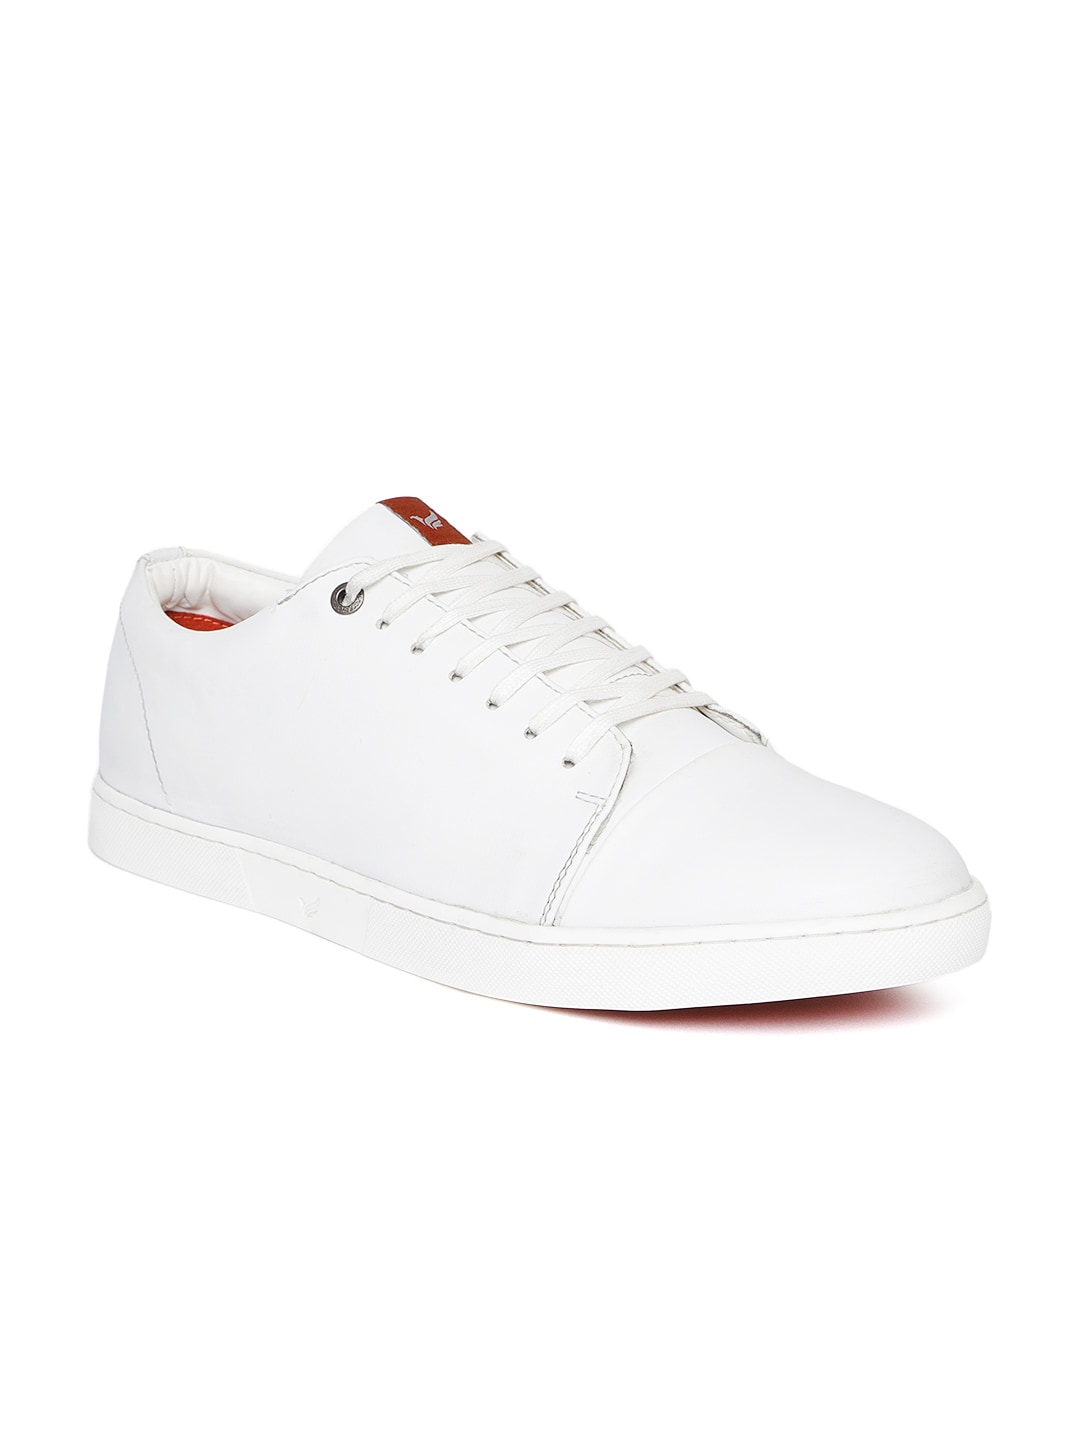 571eddb50869f3 Casual Shoes For Men - Buy Casual   Flat Shoes For Men